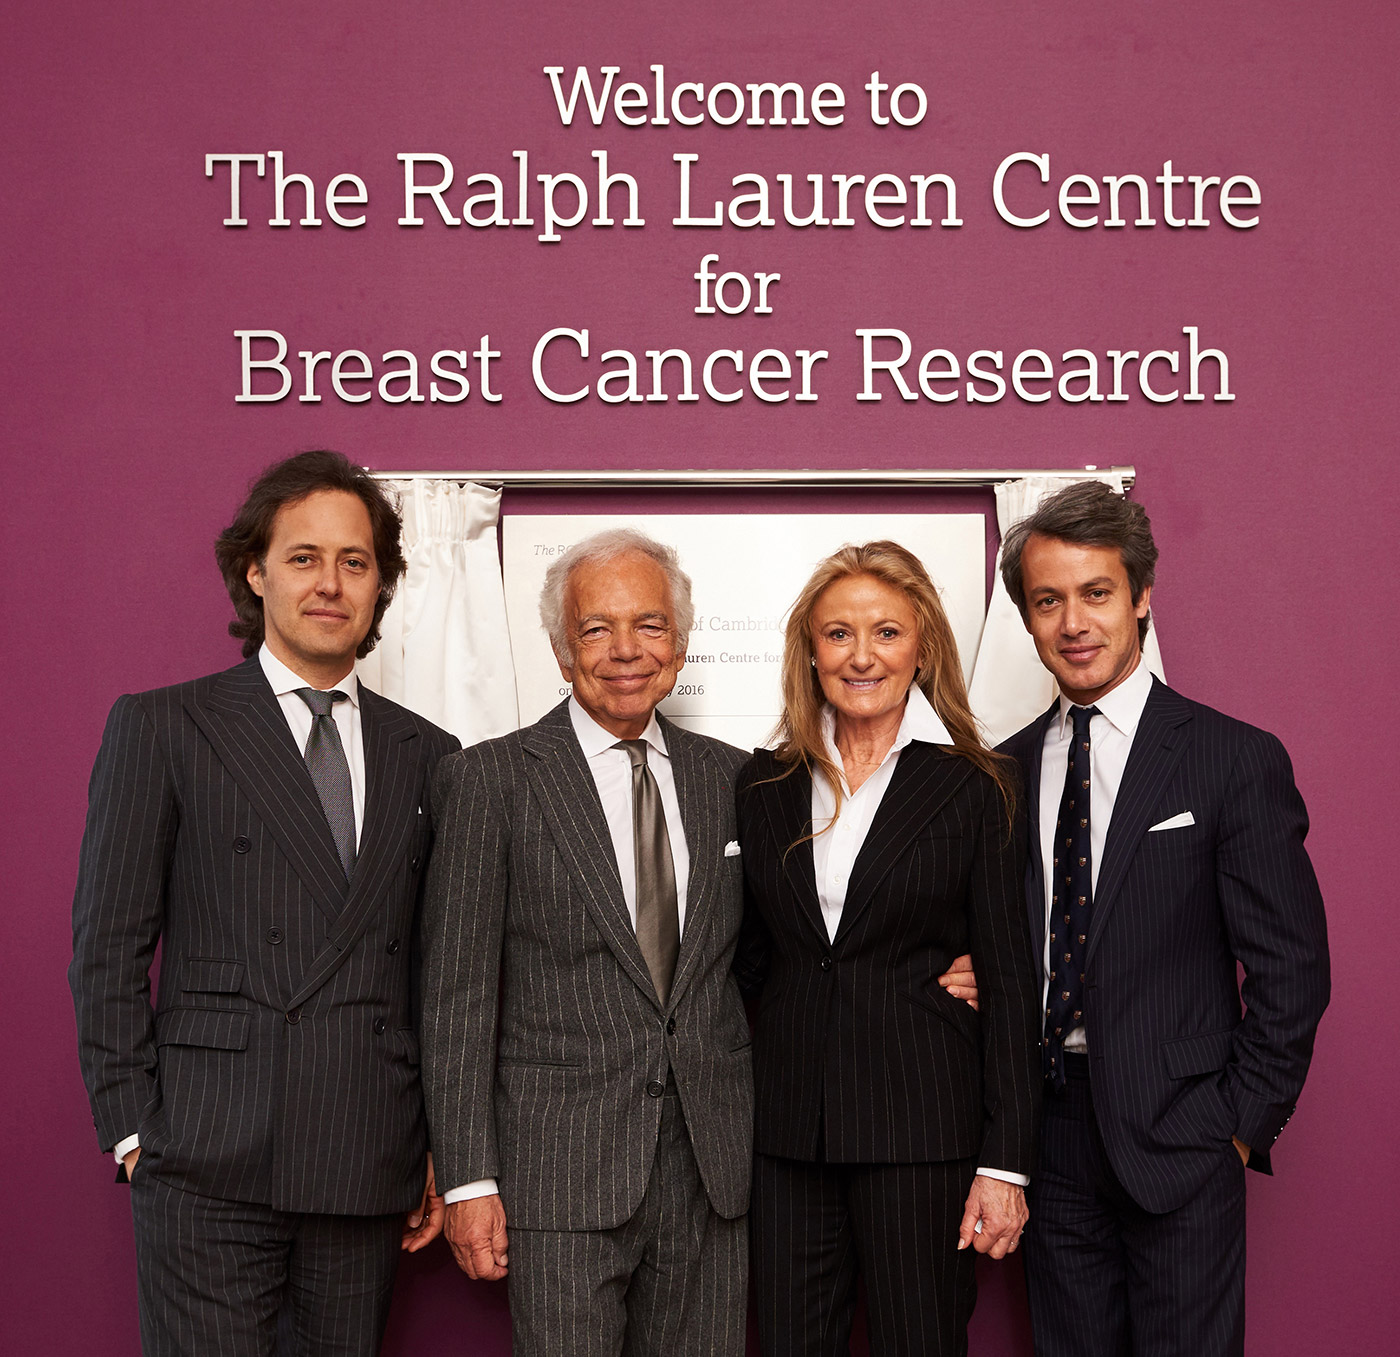 (Left to right) David, Ralph, Ricky, and Andrew Lauren at the unveiling of The Royal Marsden's new breast cancer research center